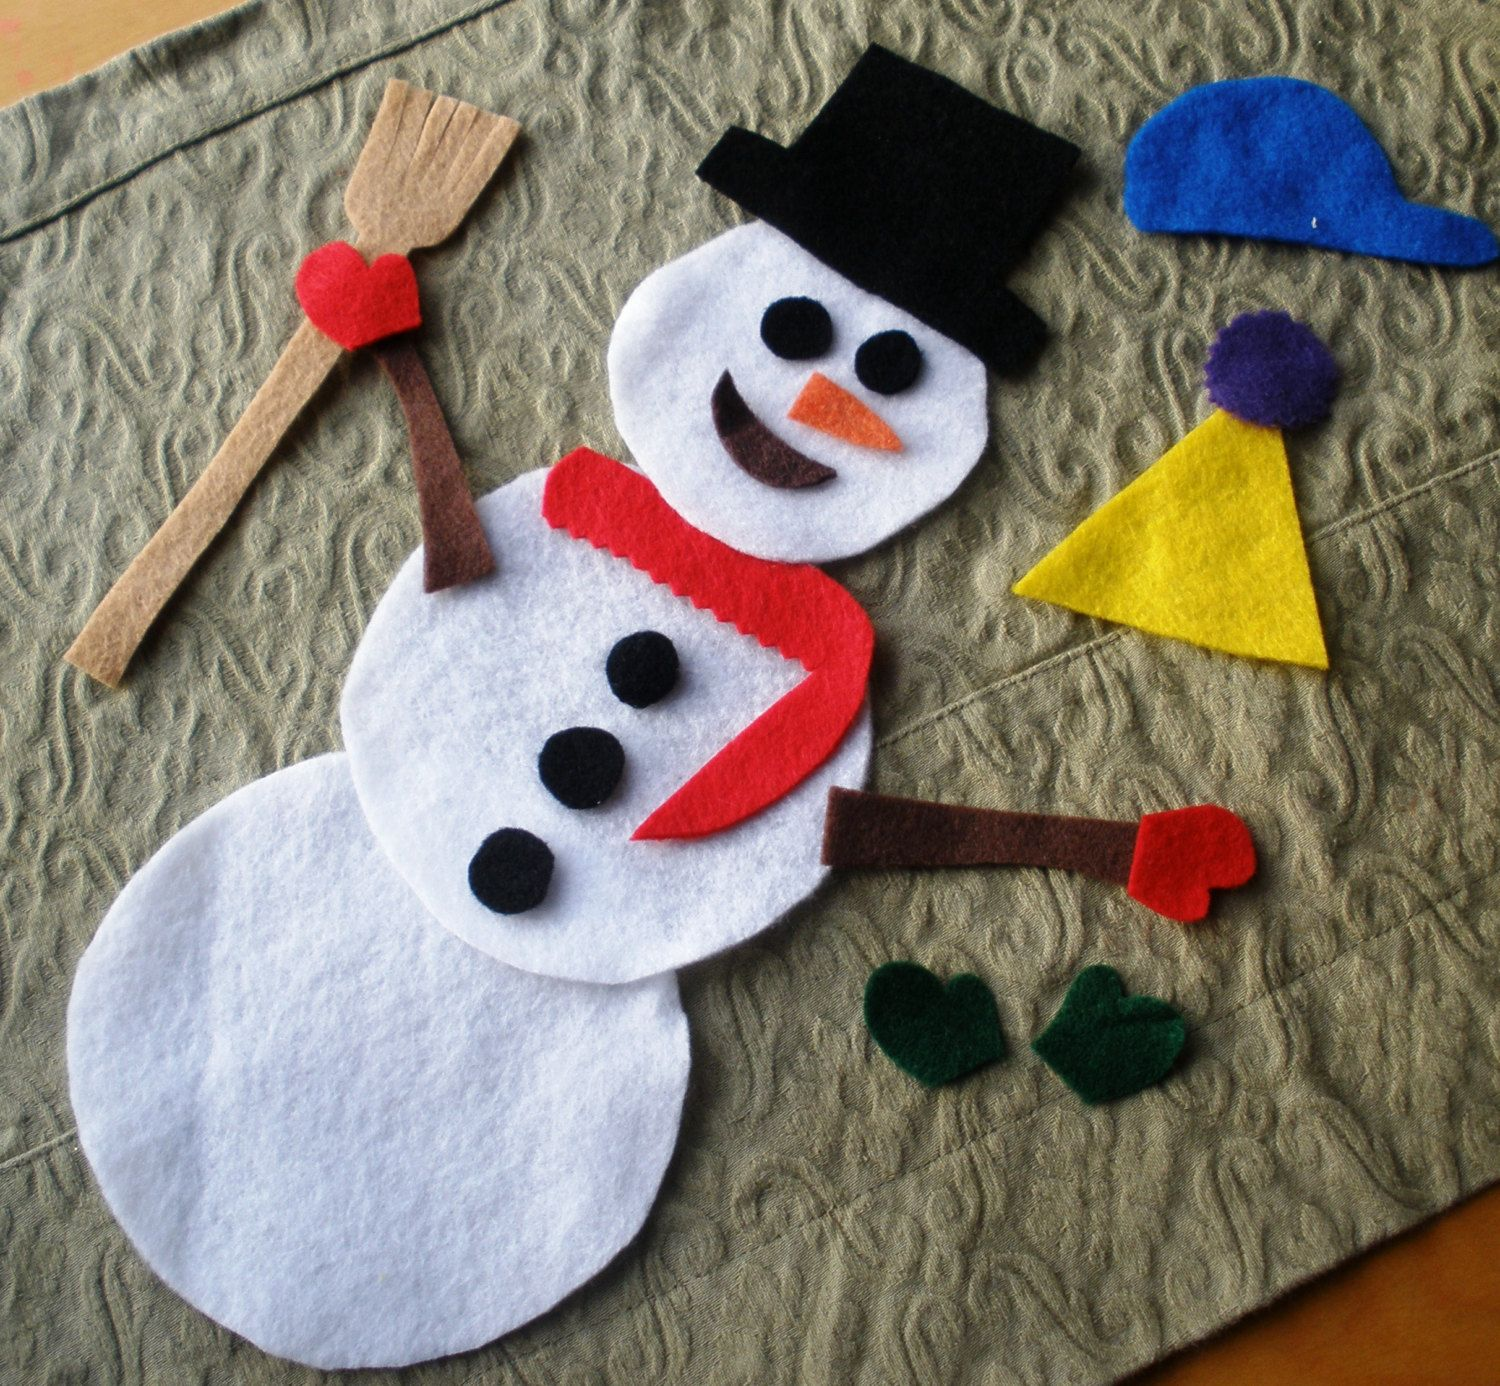 Felt Snowman Building Activity Kit And Busy Bag